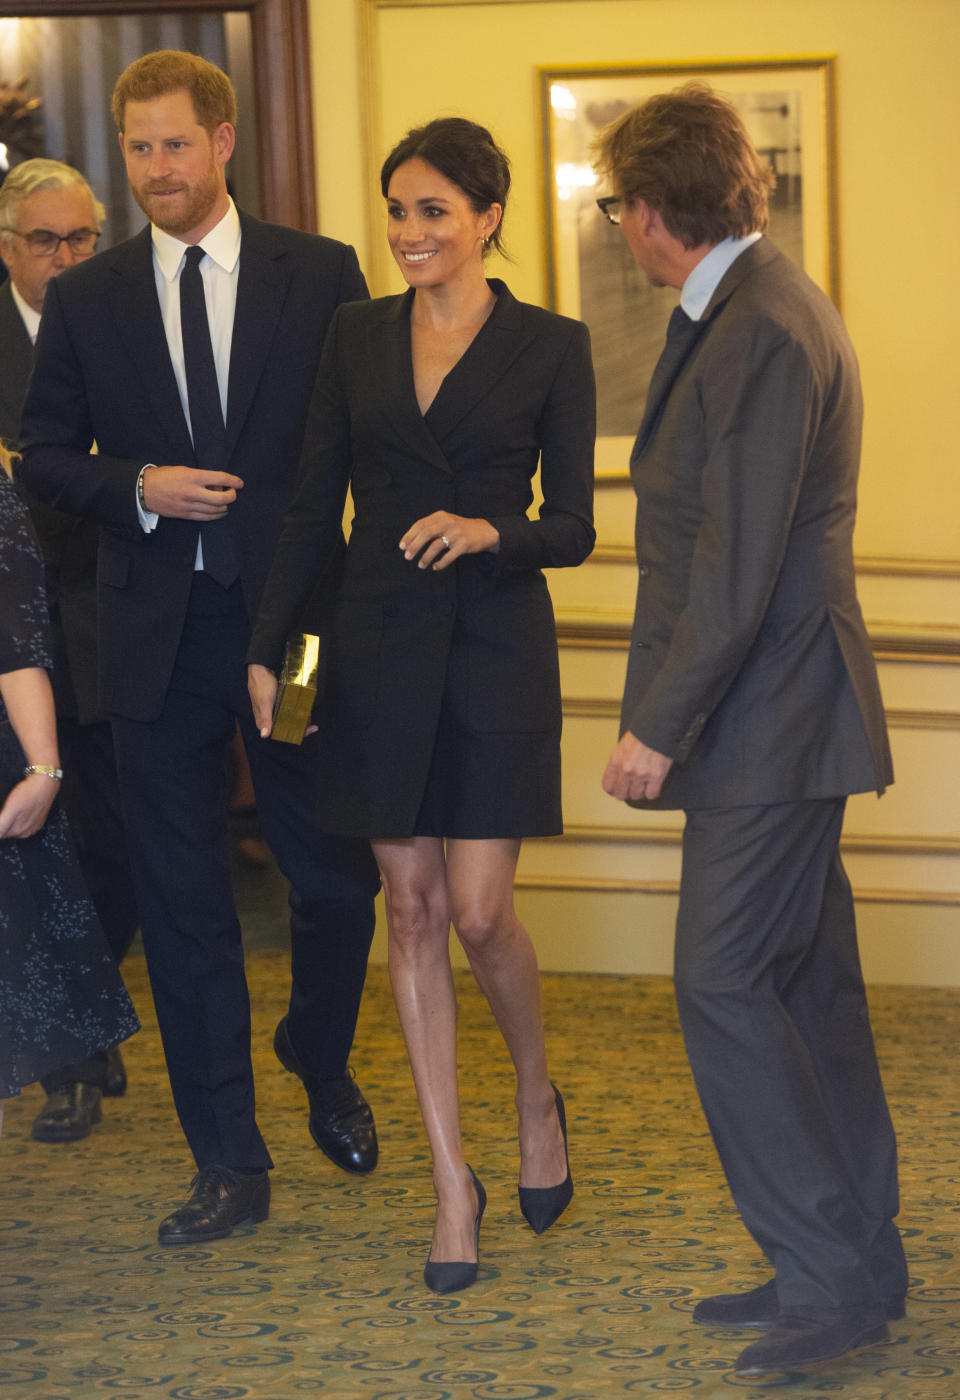 <p>On April 29, the Duke and Duchess broke a nearly month-long hiatus from the public eye attending a gala performance of 'Hamilton'. For the occassion, Meghan threw caution to the royal rulebook by wearing a tuxedo mini dress from Canadian label Judith & Charles. The dress diced with protocol, coming to roughly five inches above the knee. She paired the glamorous evening look with Paul Andrews heels, a £49 Becksondergaard clutch and stunning drop earrings by Shaun Leane. <em>[Photo: Getty]</em> </p>